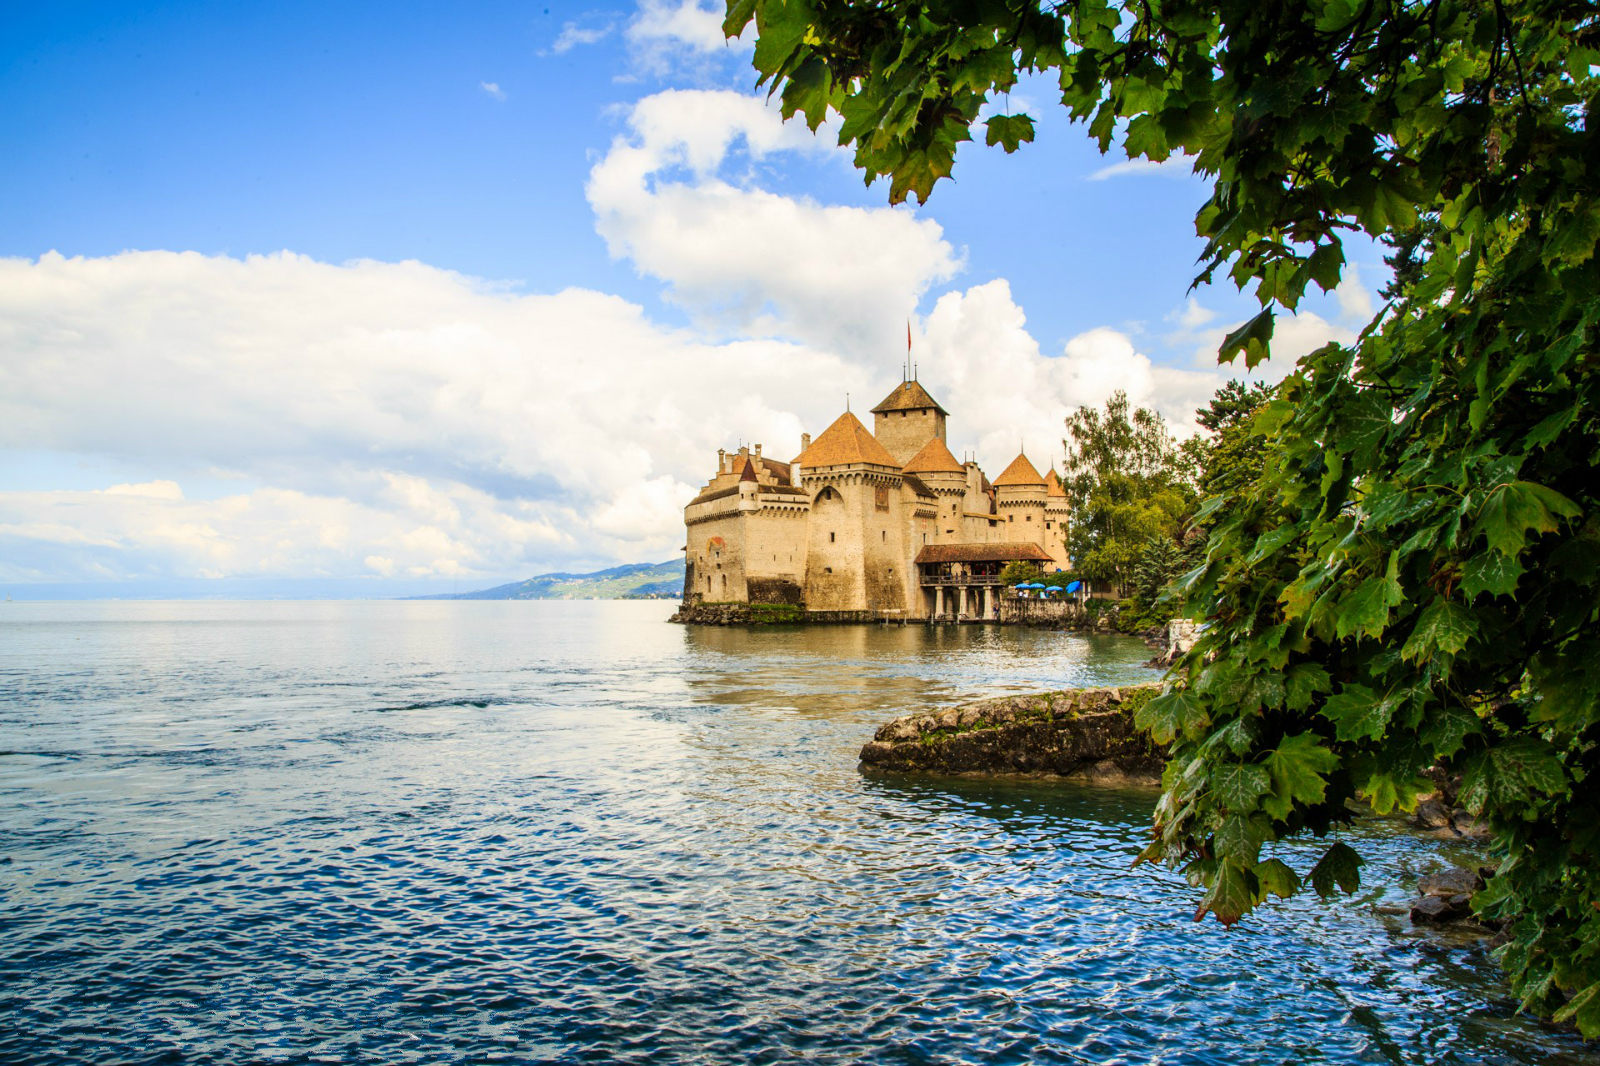 Annemasse - 洛桑(Lausanne) - 西庸城堡(chateau de chillon)- 伯恩(Berne)- 因特拉肯(Interlaken)